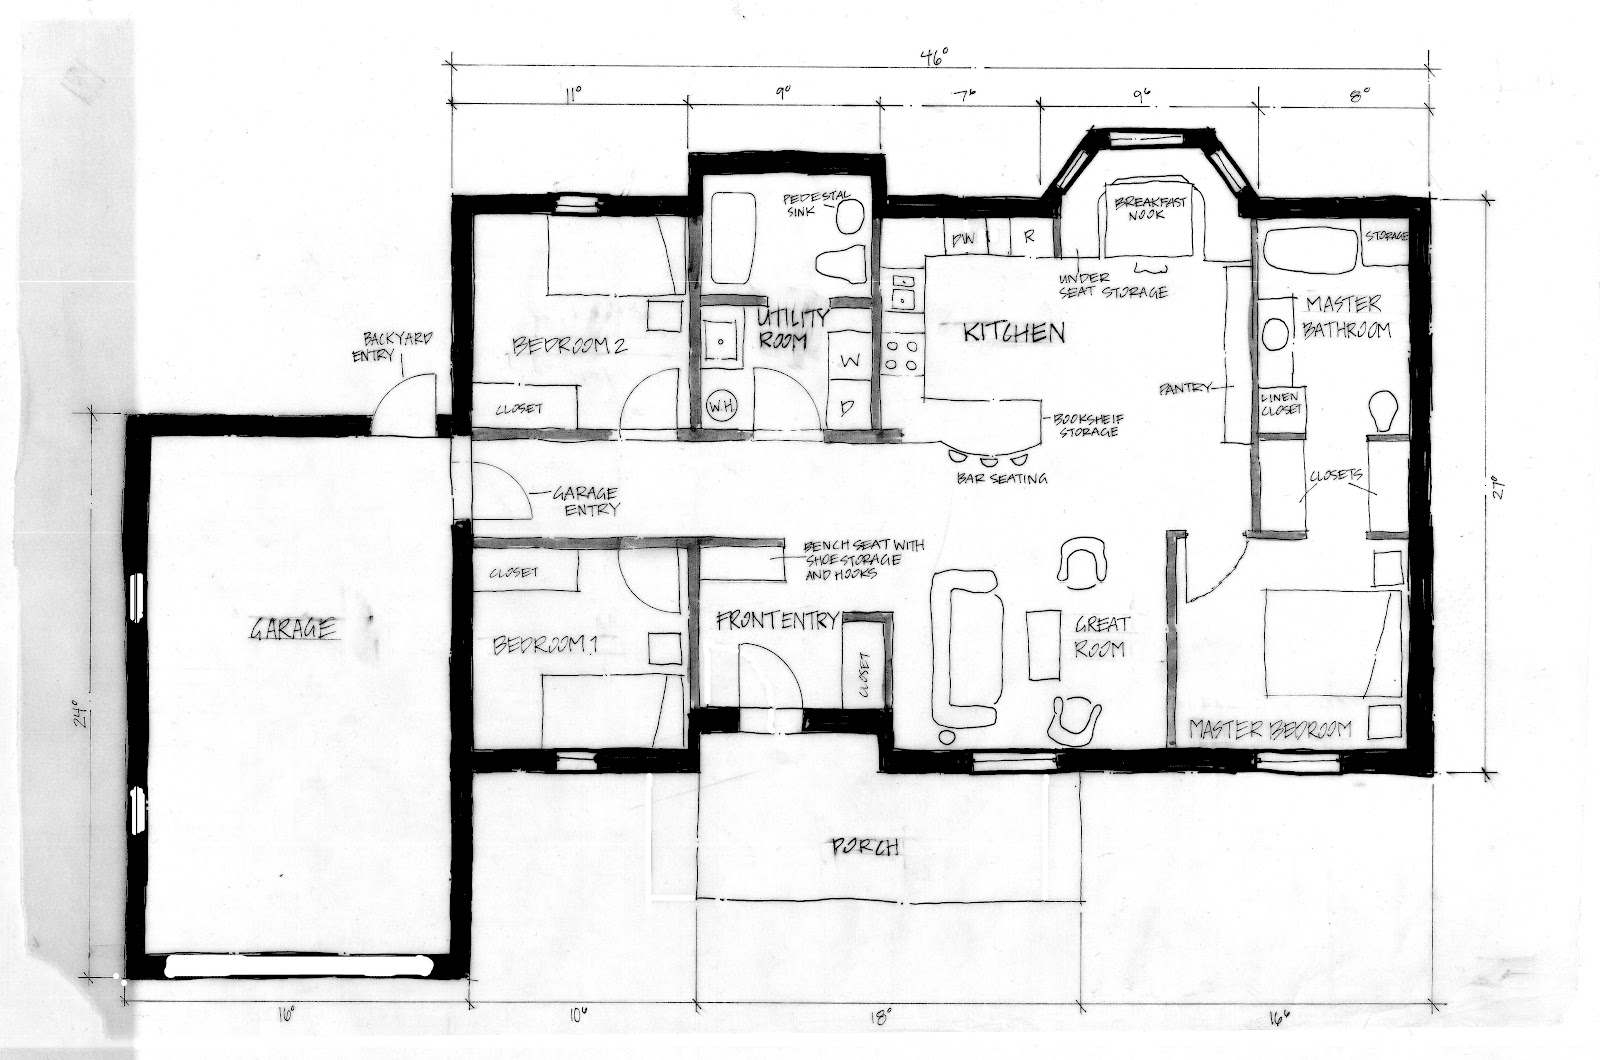 Taylor brock design portfolio habitat for humanity for Aging in place home plans